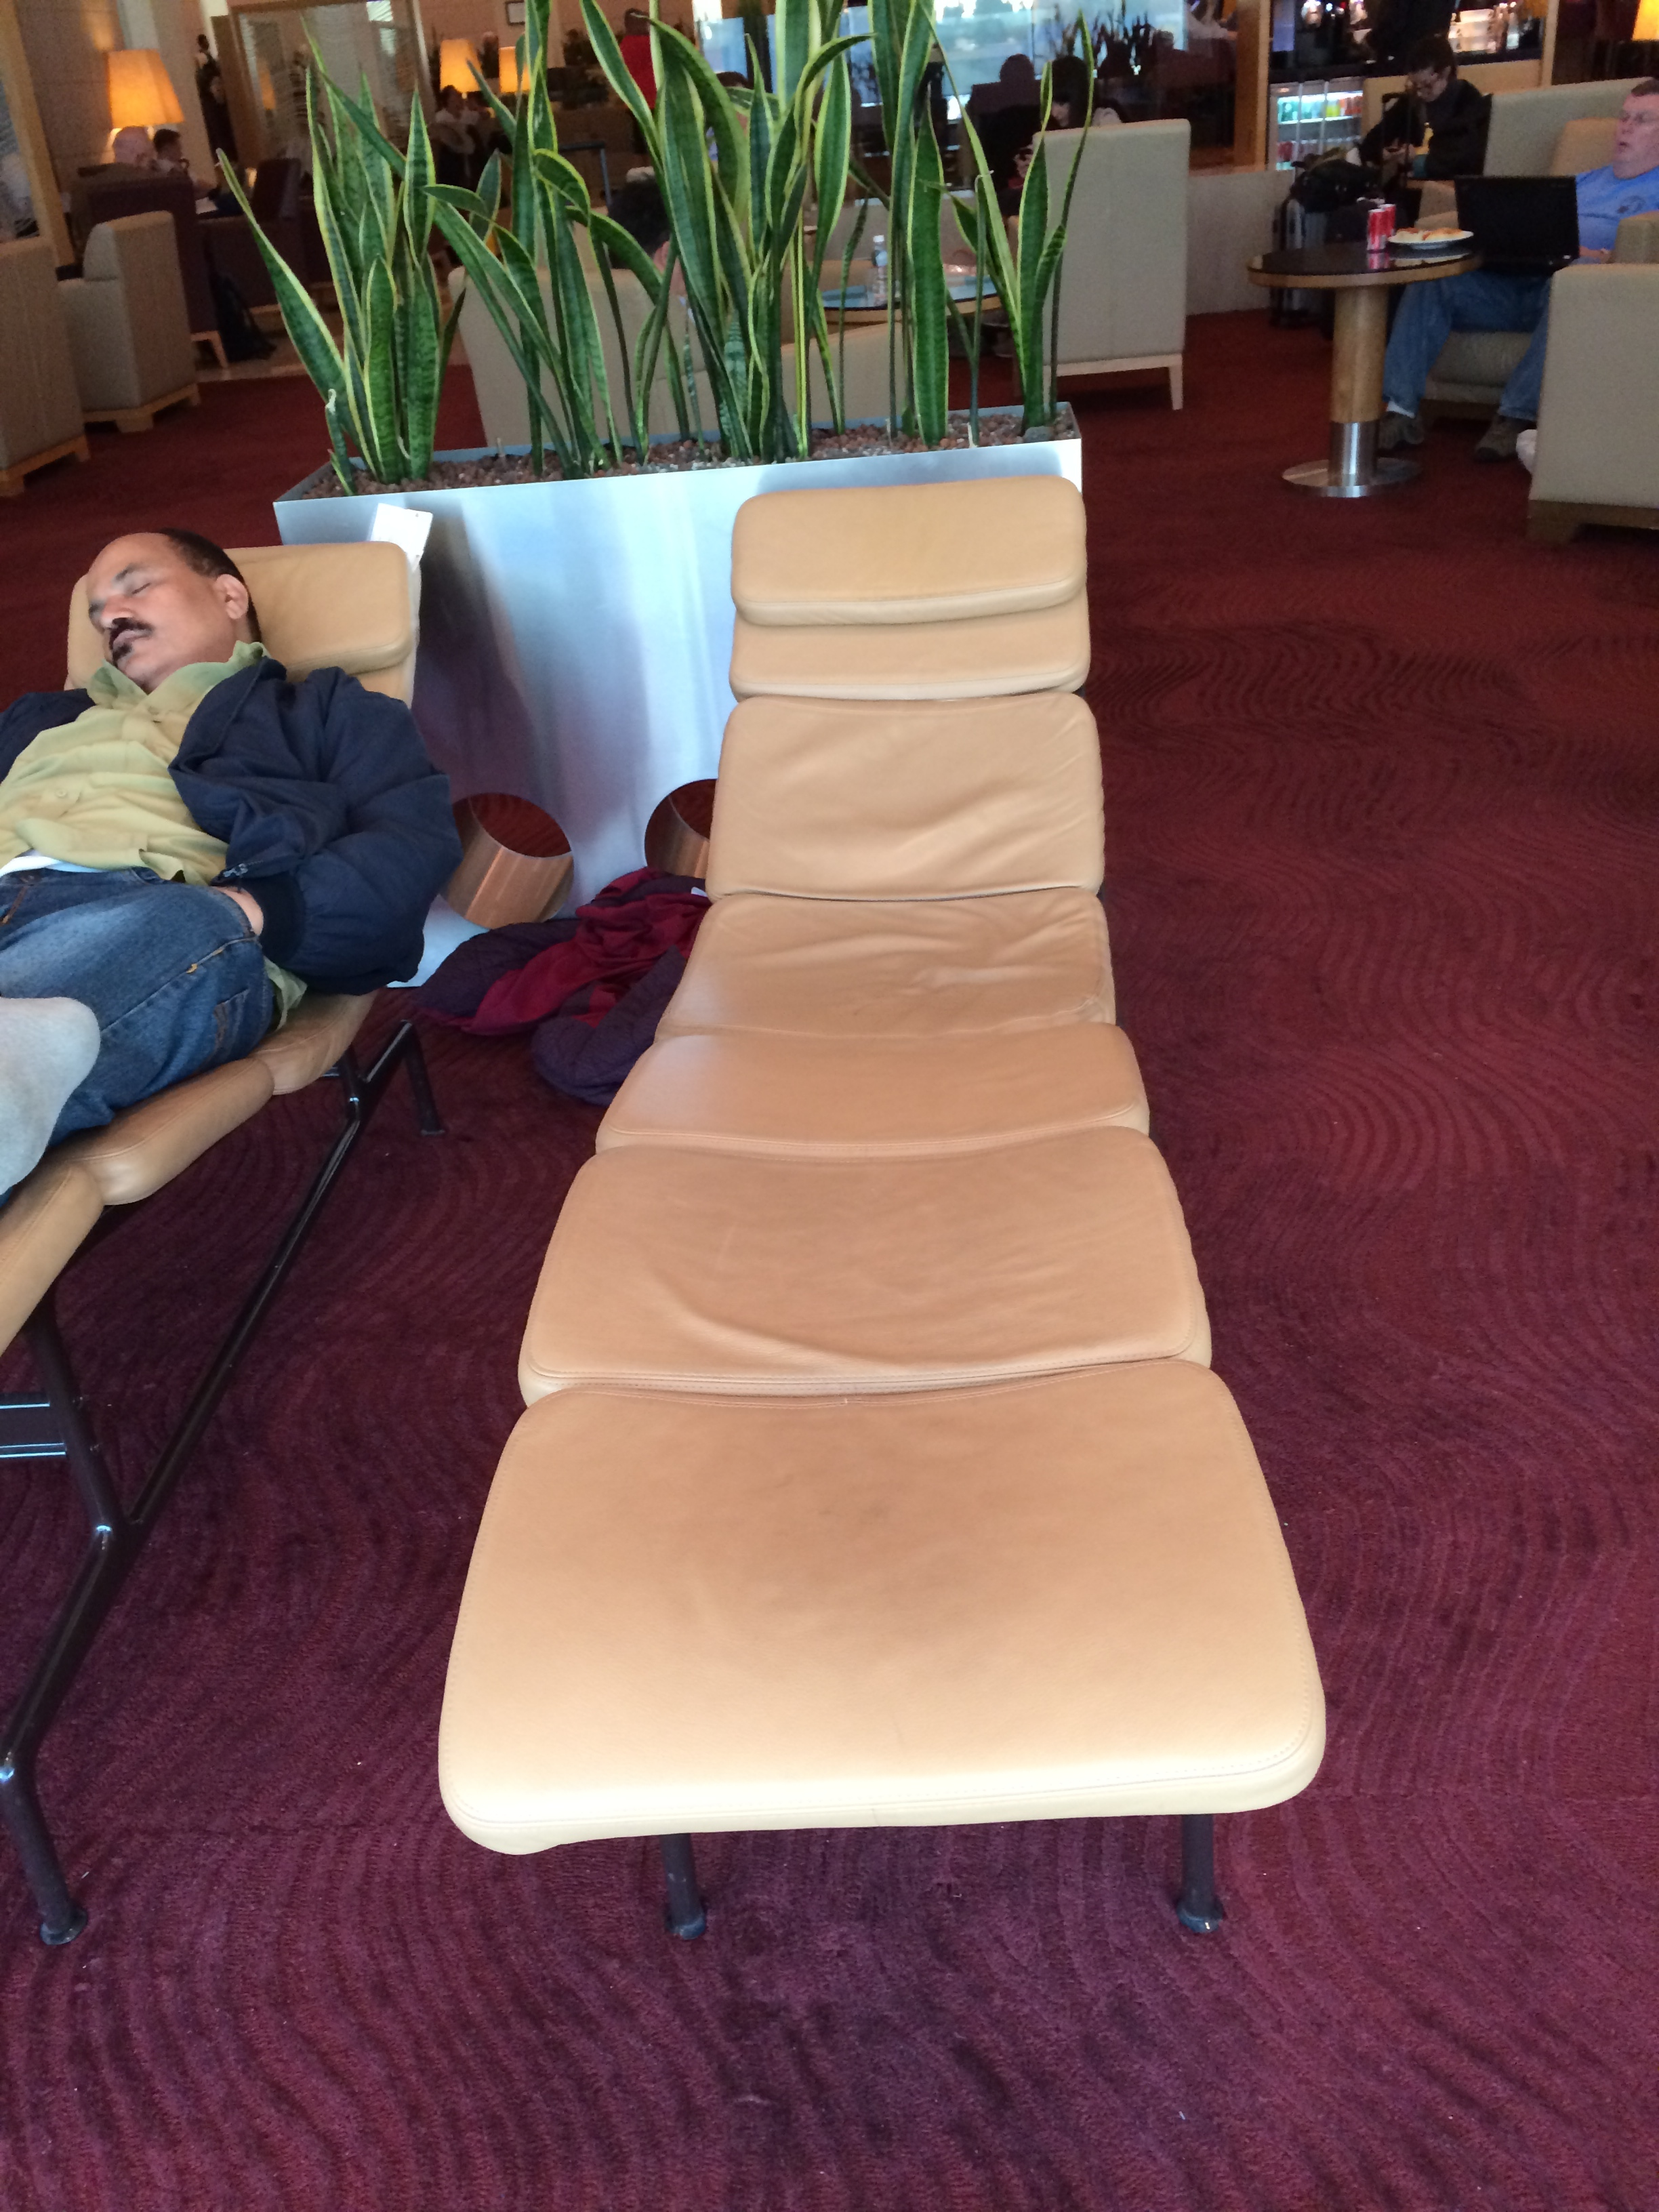 Lounge chairs you could sleep on in the Premium Lounge of Qatar Airways in Doha. Qatar